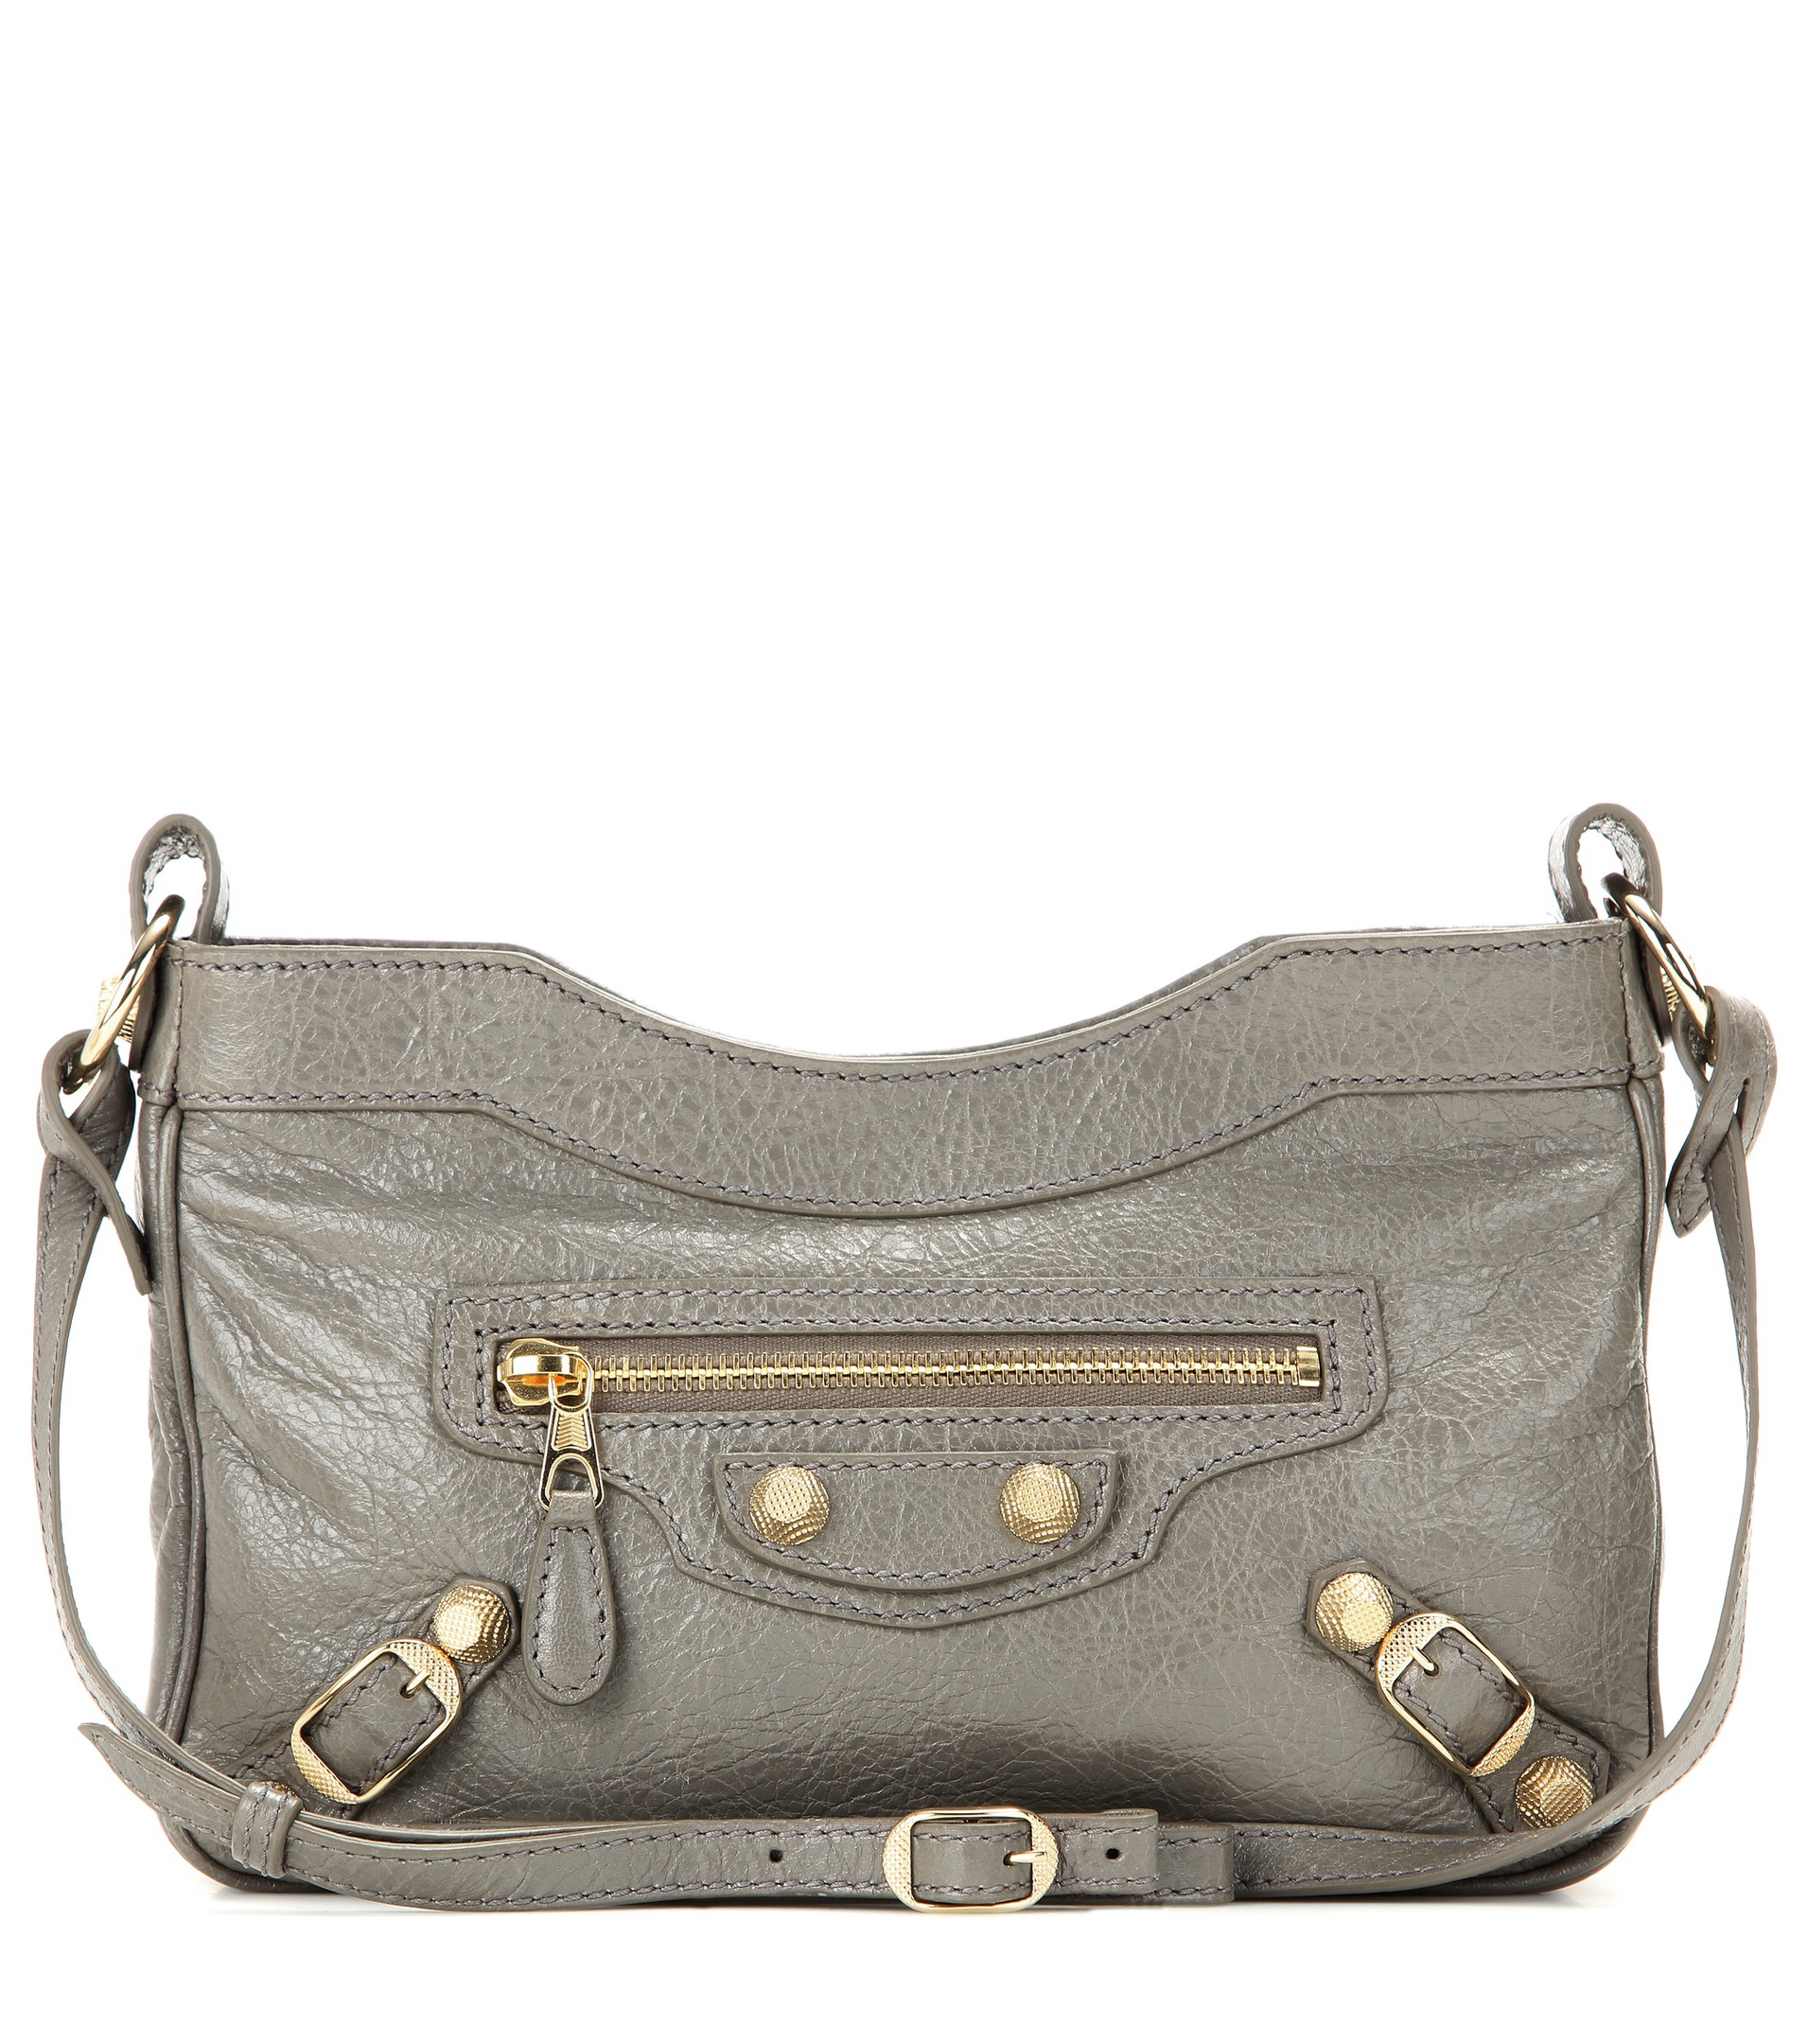 f2286cf894ea balenciaga factory outlet - Balenciaga Giant 12 Hip Leather Shoulder Bag in  Gray (grey)